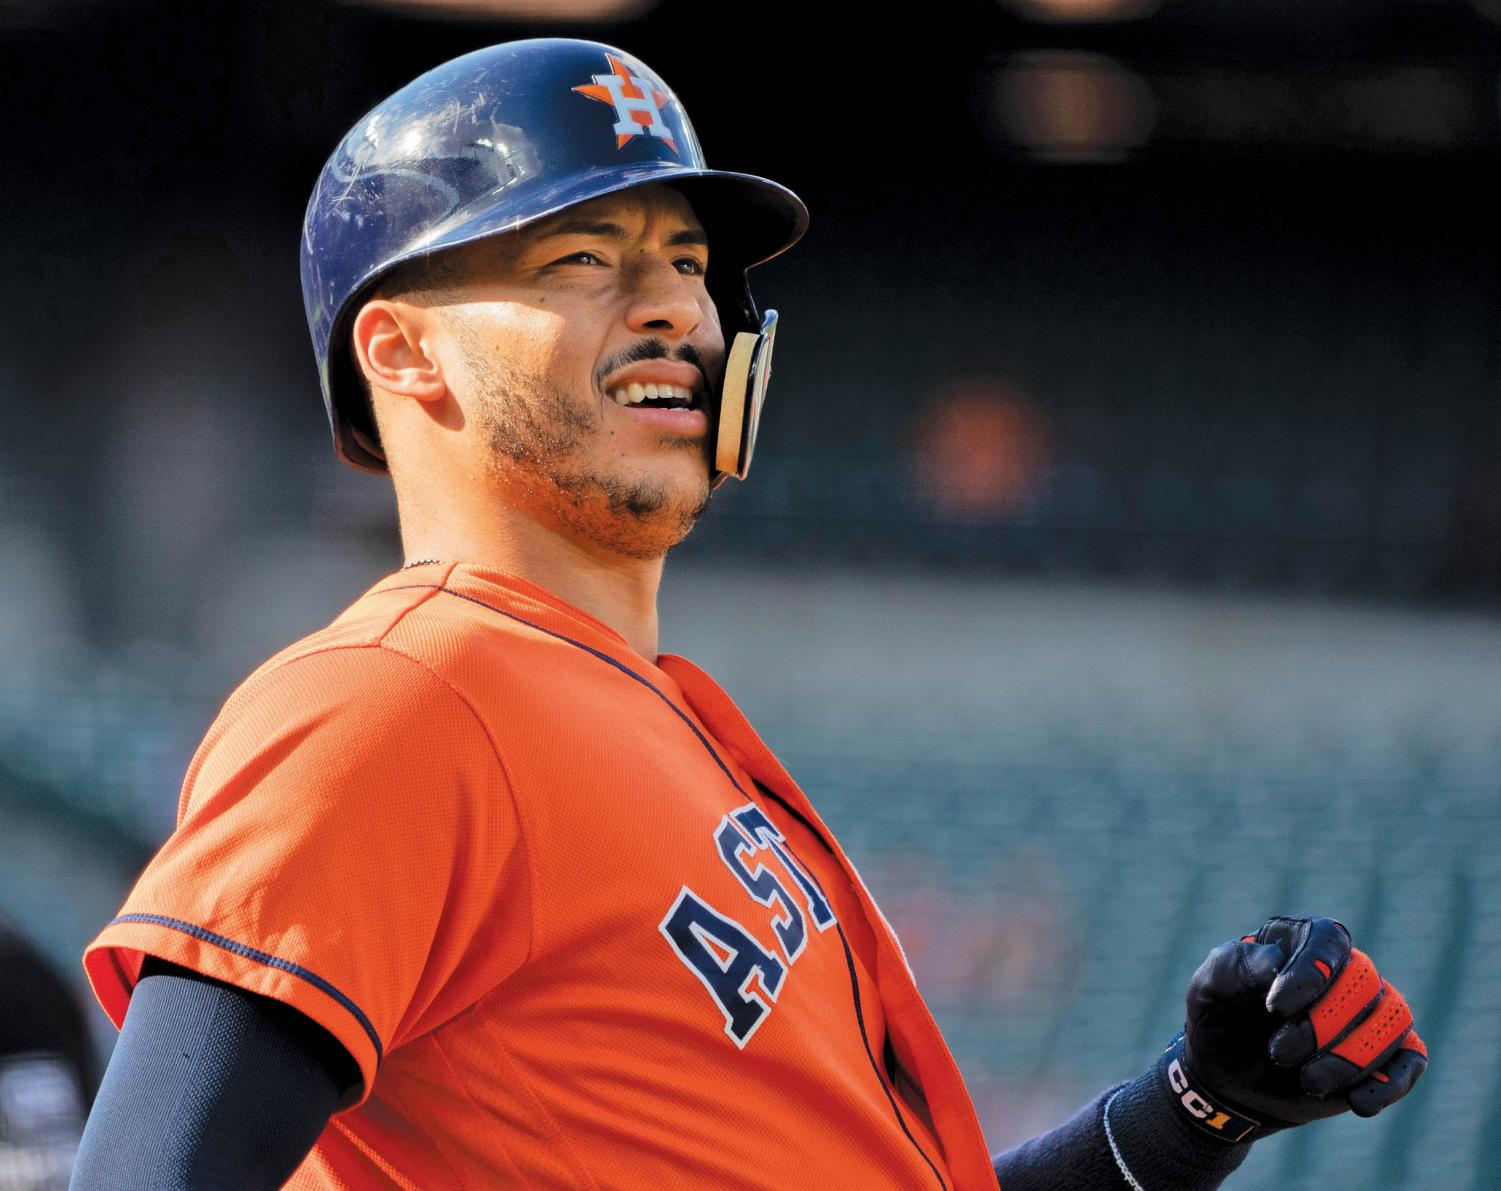 In his return to MLB action, Astros shortstop Carlos Correa is fully recovered from a back injury and ready to help Houston through playoffs.